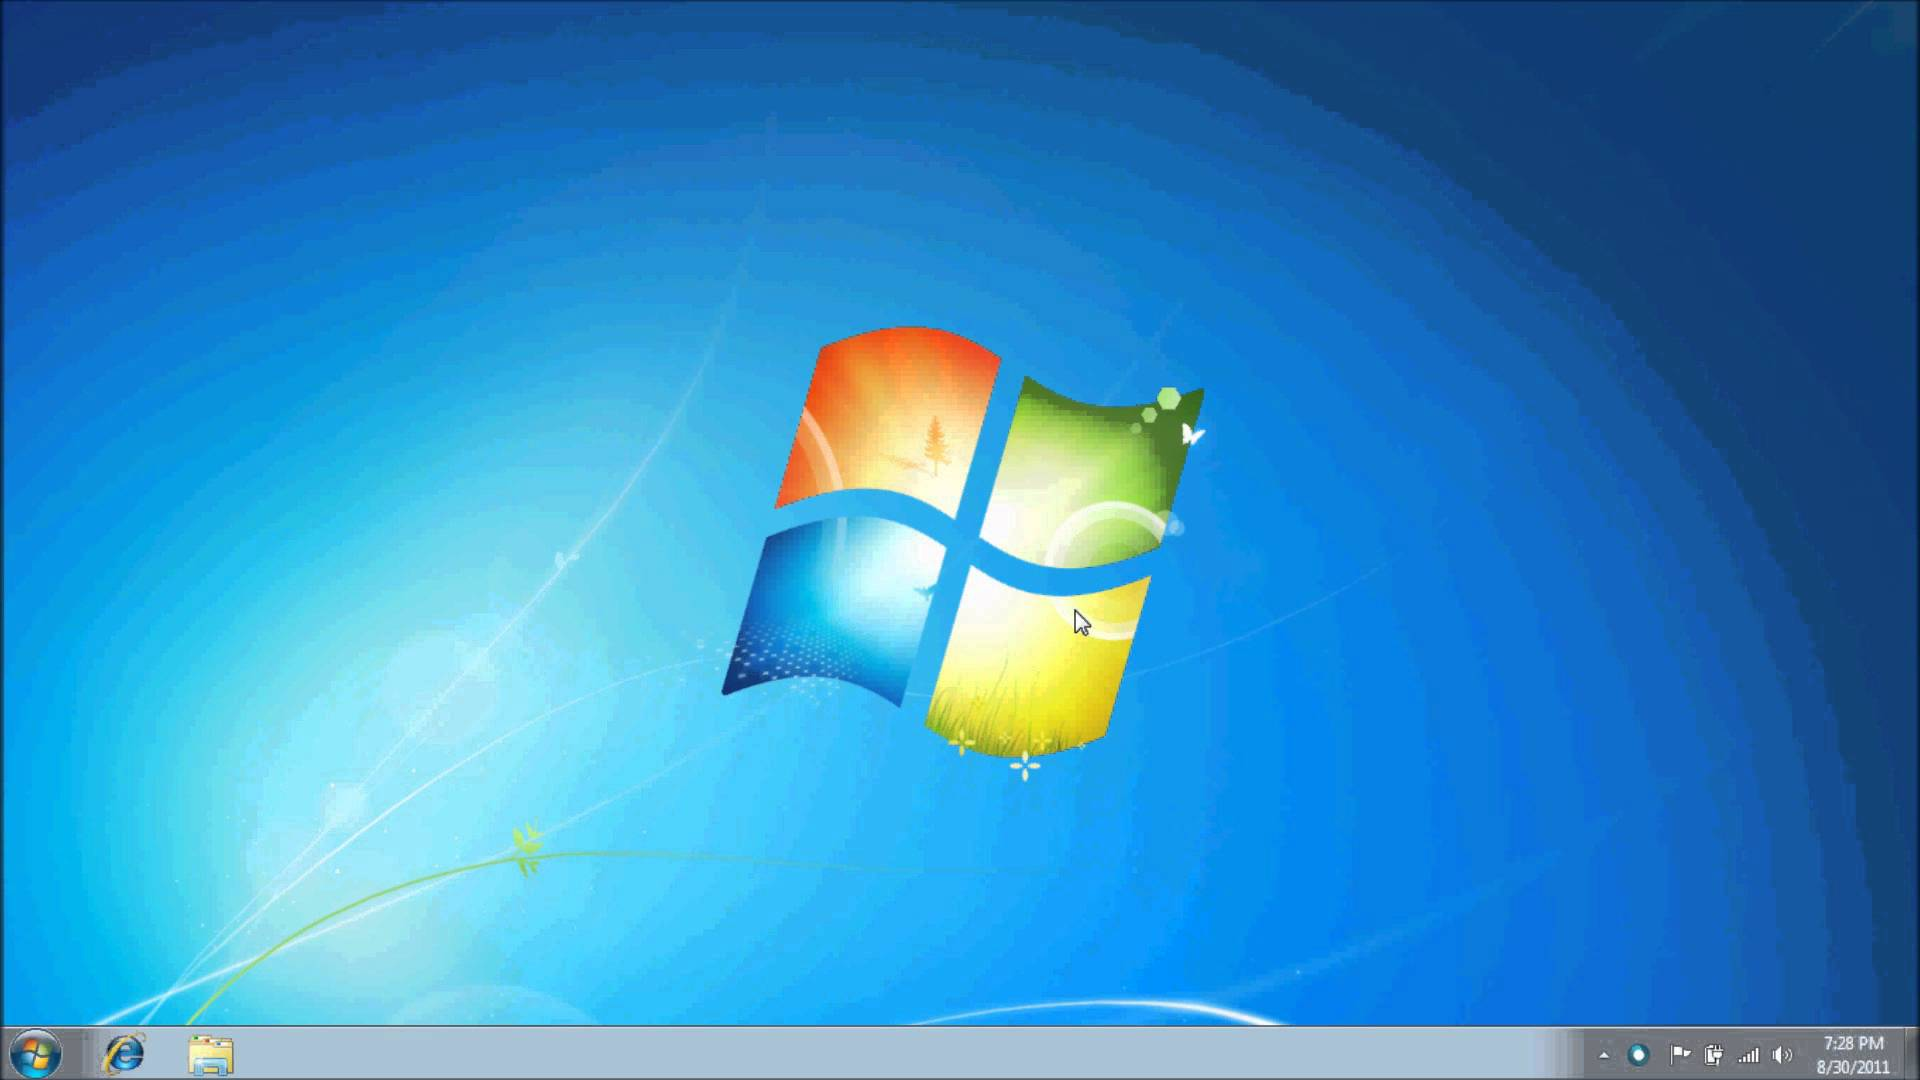 Windows 7 Icons - PNG & Vector - Free Icons and PNG Backgrounds